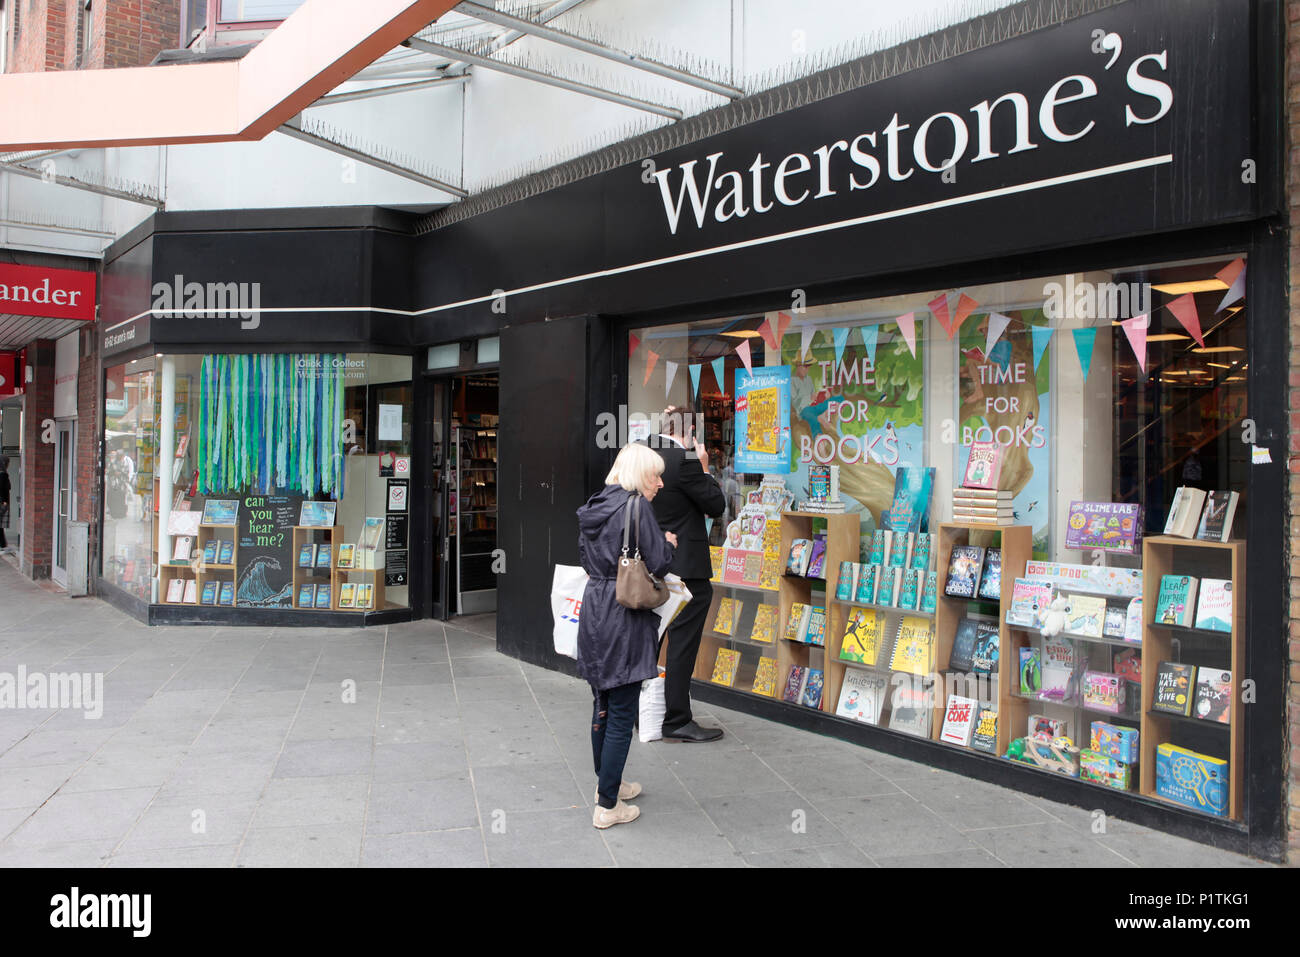 Wterstones book shop. Shops and people shopping in Harrow, middlesex, London, UK - Stock Image